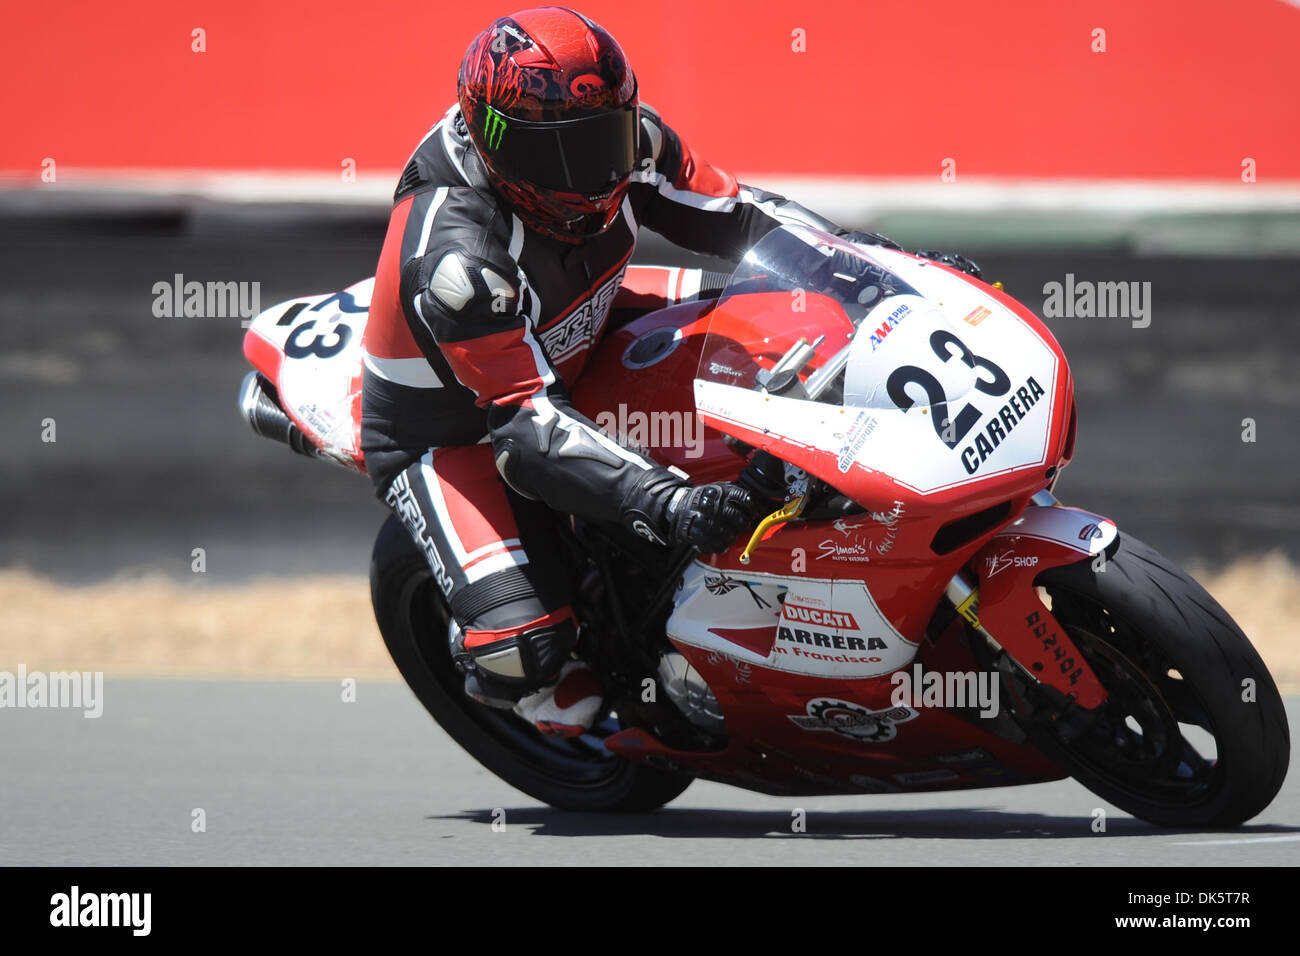 May 13, 2011 - Sonoma, California, United States of America - Jose Flores (23) rides a Ducati 848 during AMA Pro SuperSport practice at the West Coast Moto Jam at Infineon Raceway. (Credit Image: © Matt Cohen/Southcreek Global/ZUMAPRESS.com) - Stock Image